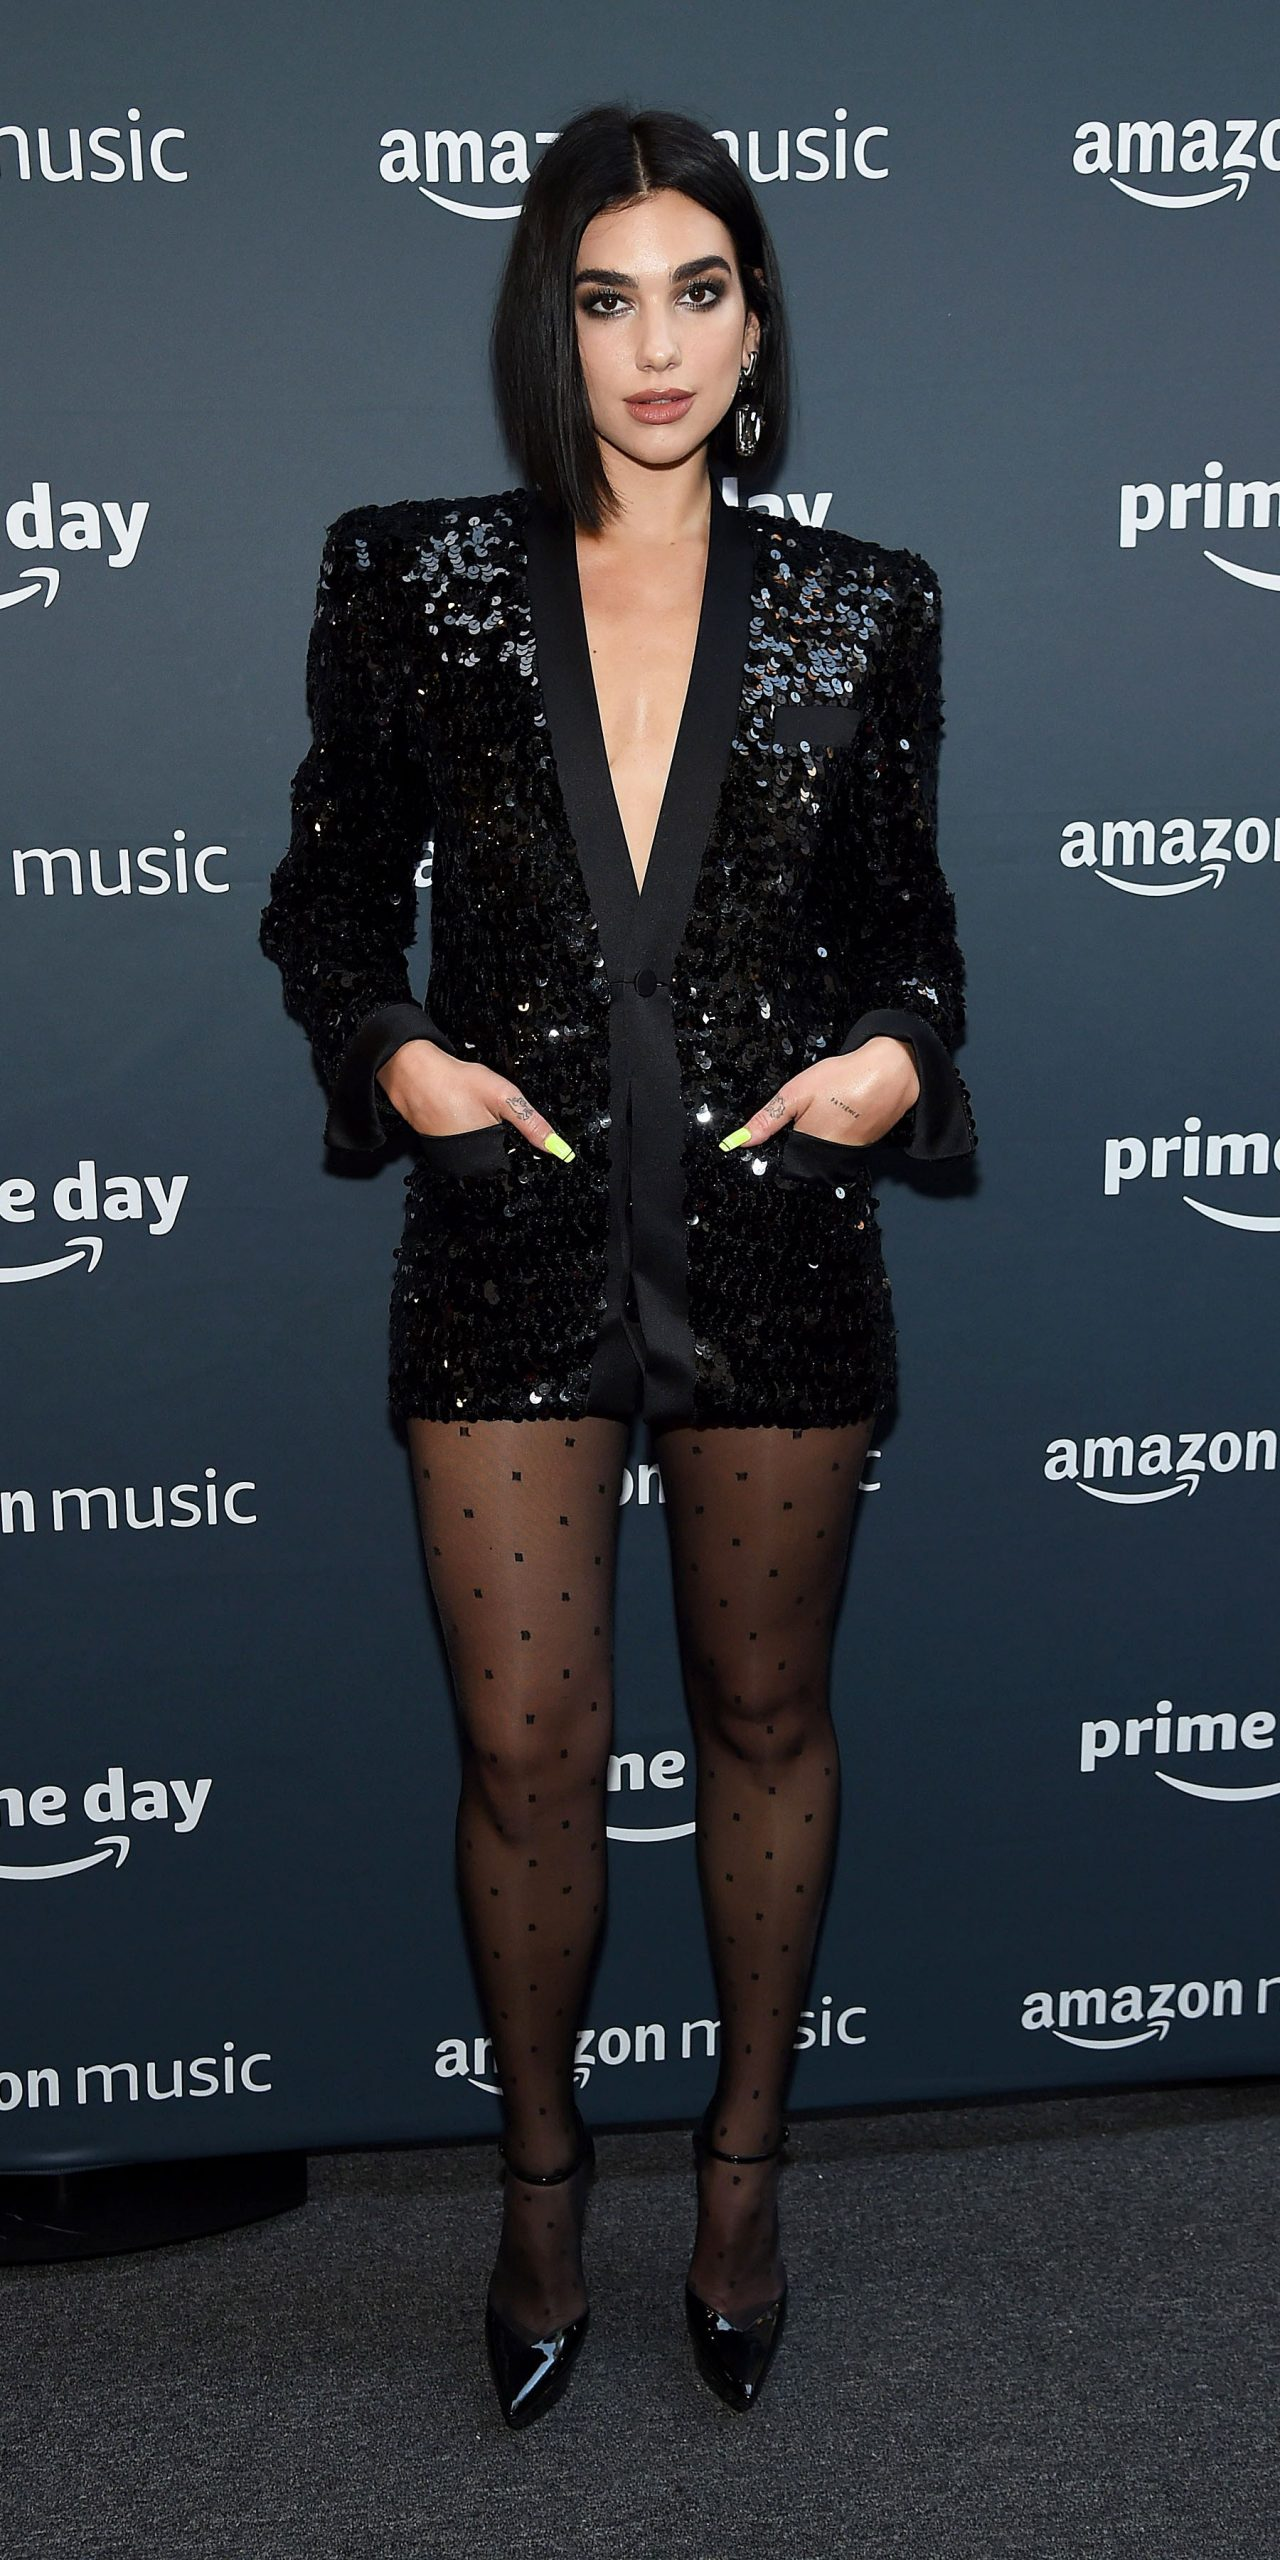 Sequined Blazer Dress And Shiny Tights   Outfit